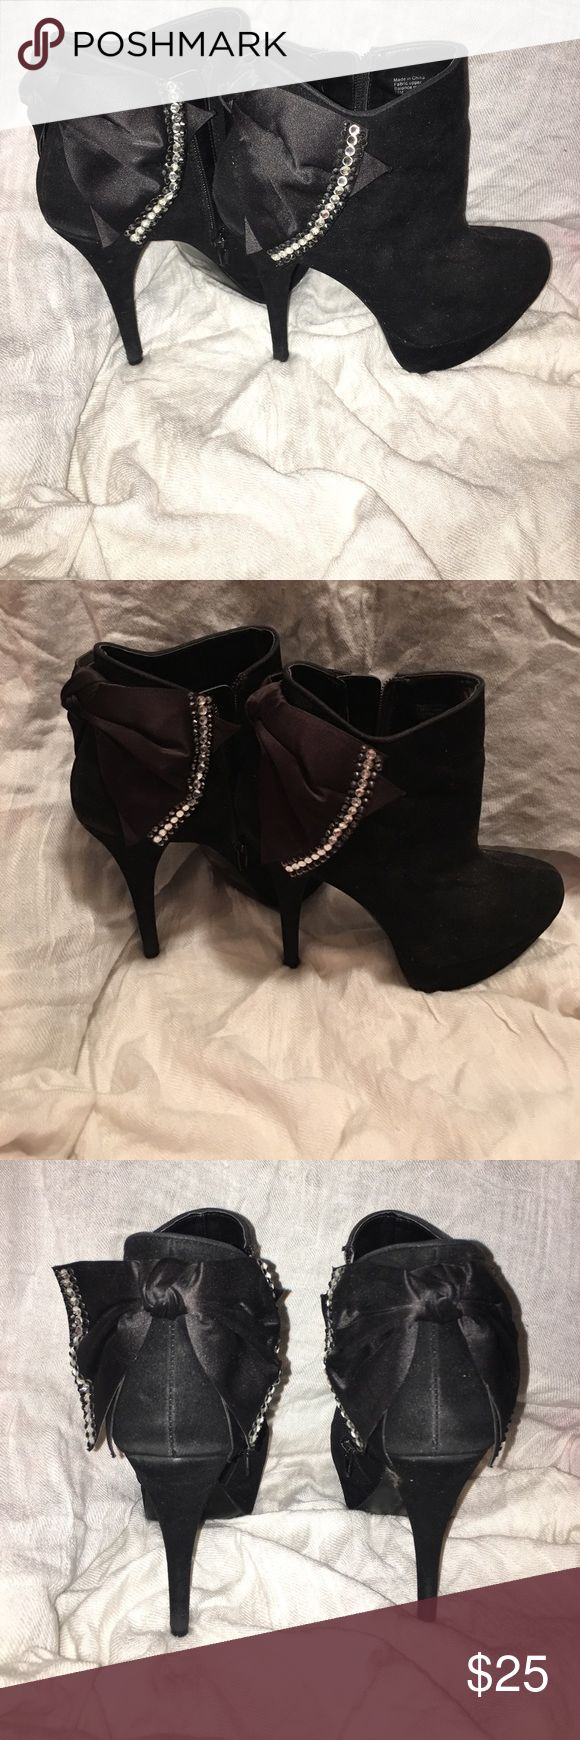 Rhinestone bow heel boots !! Rhinestone bow heel boots size 7 .5 Bakers Shoes Ankle Boots & Booties